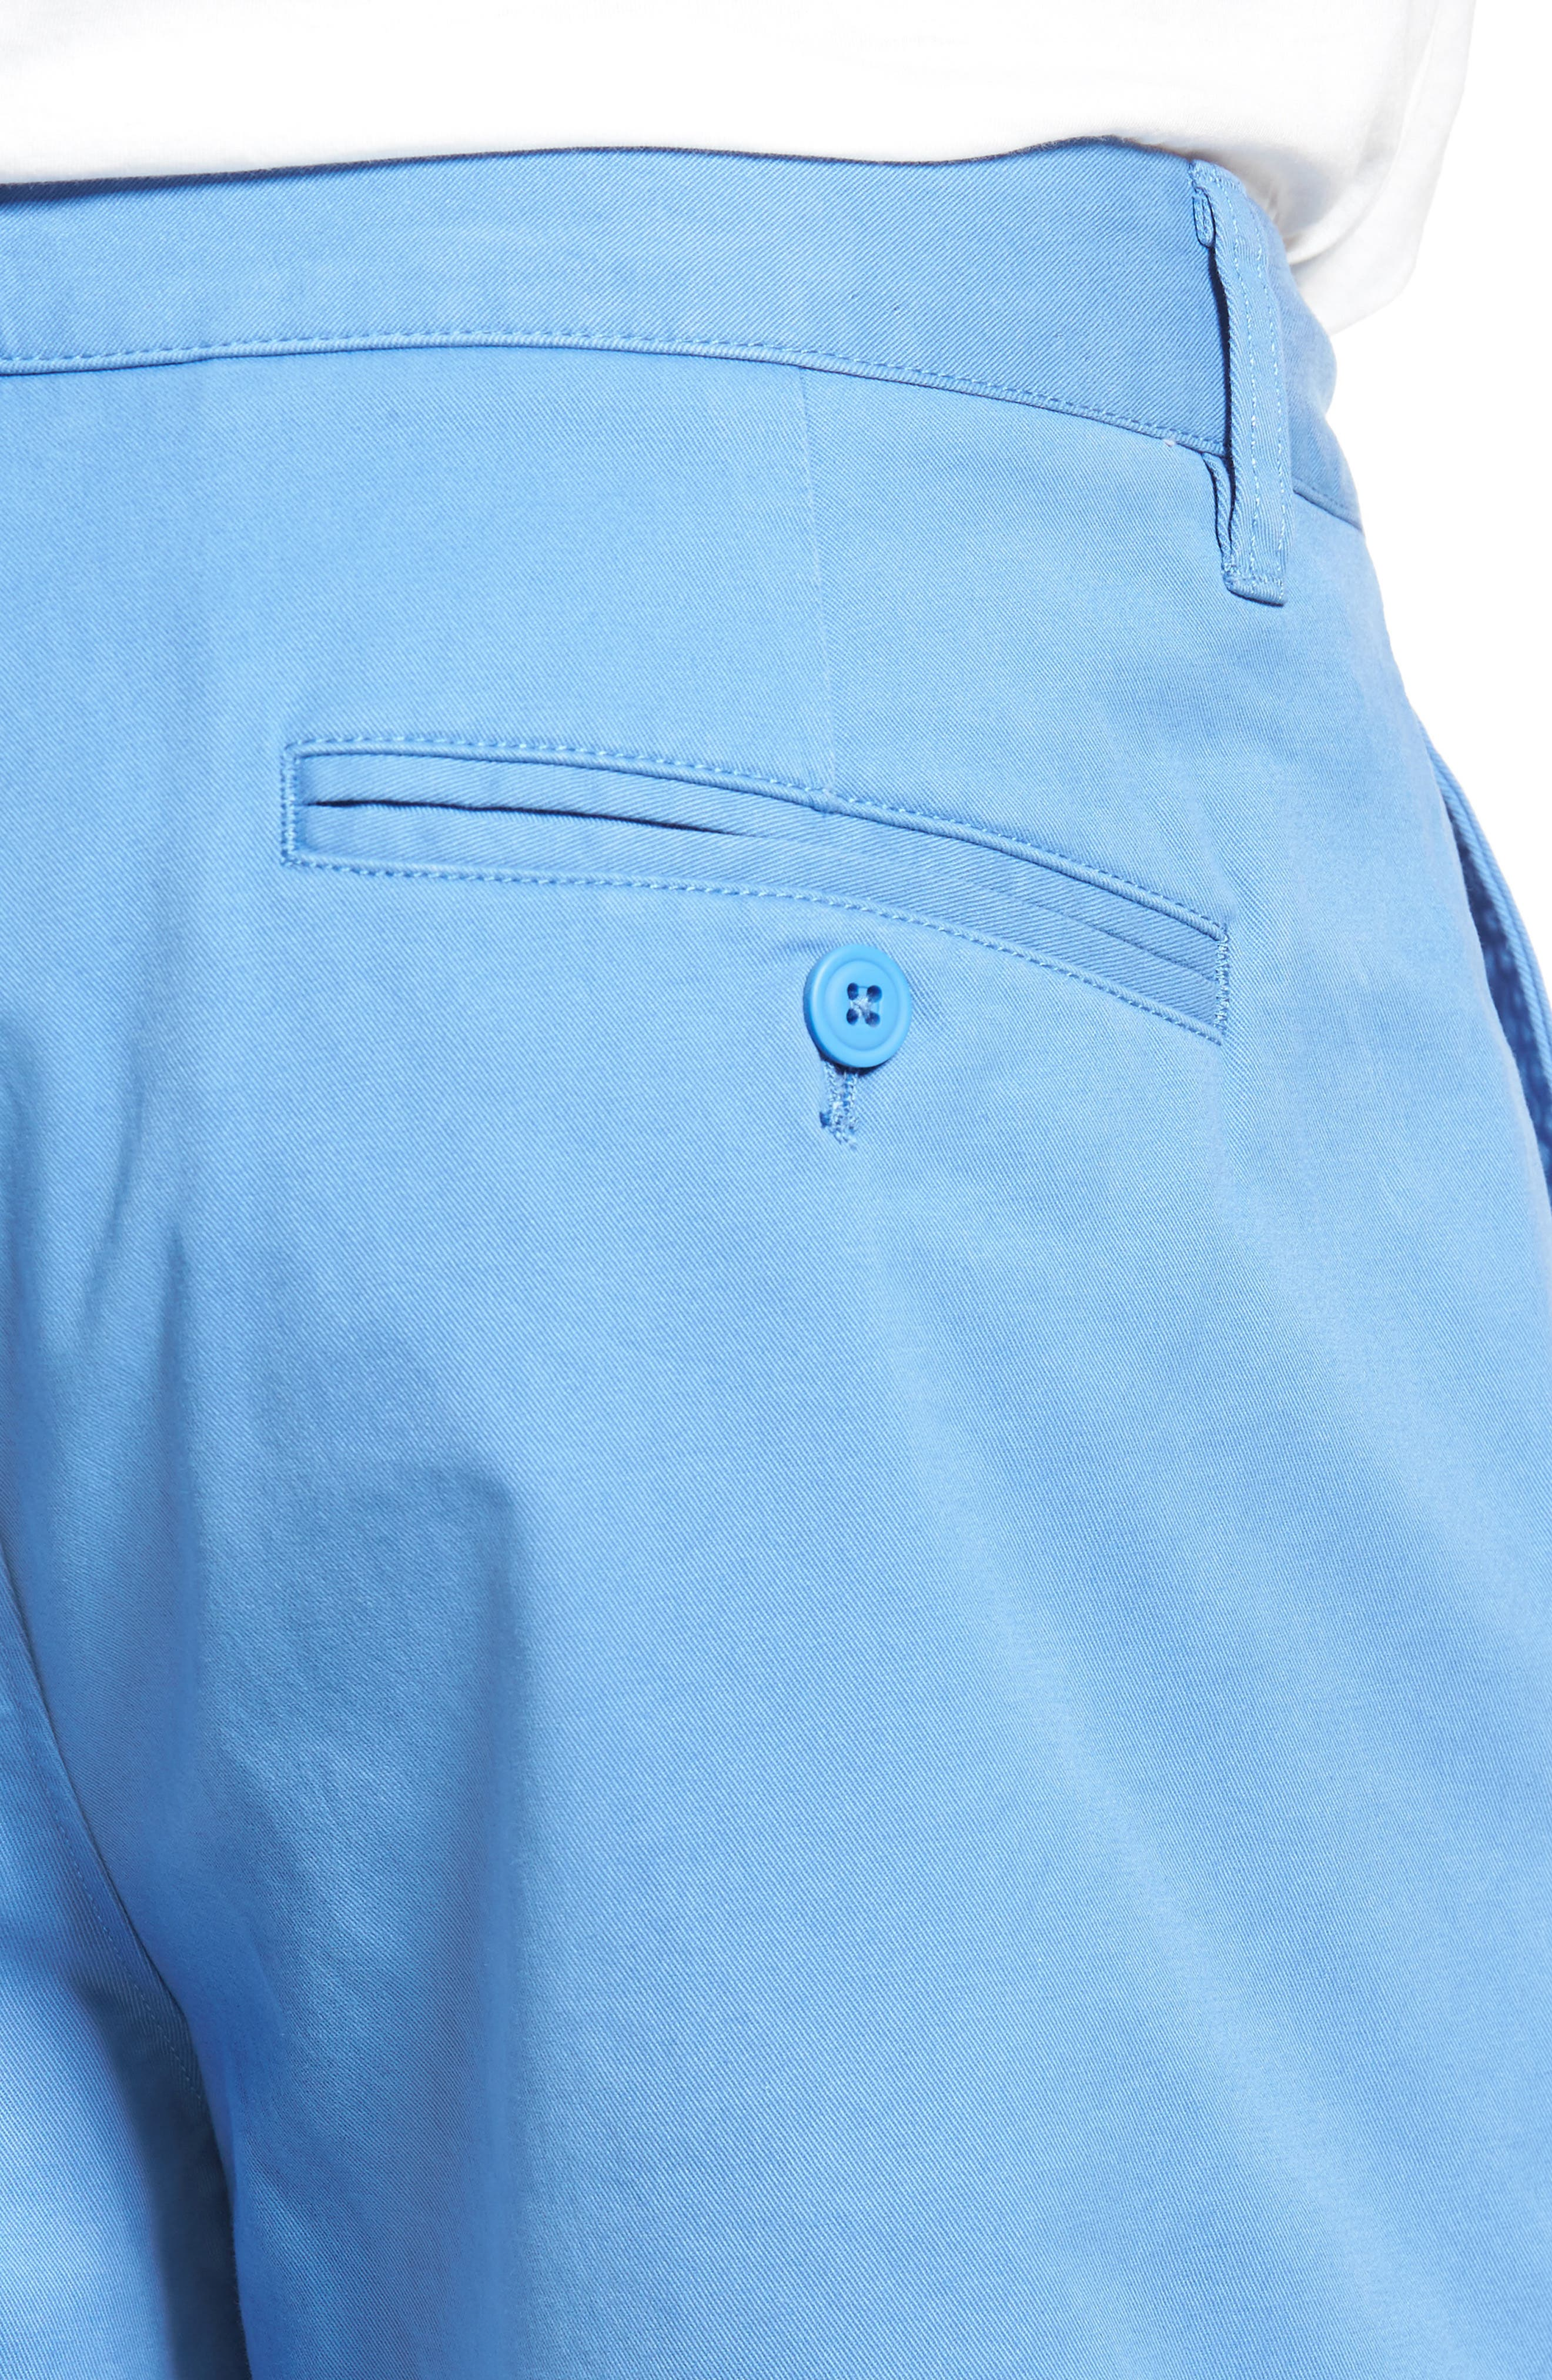 Stretch Washed Chino 7-Inch Shorts,                             Alternate thumbnail 88, color,